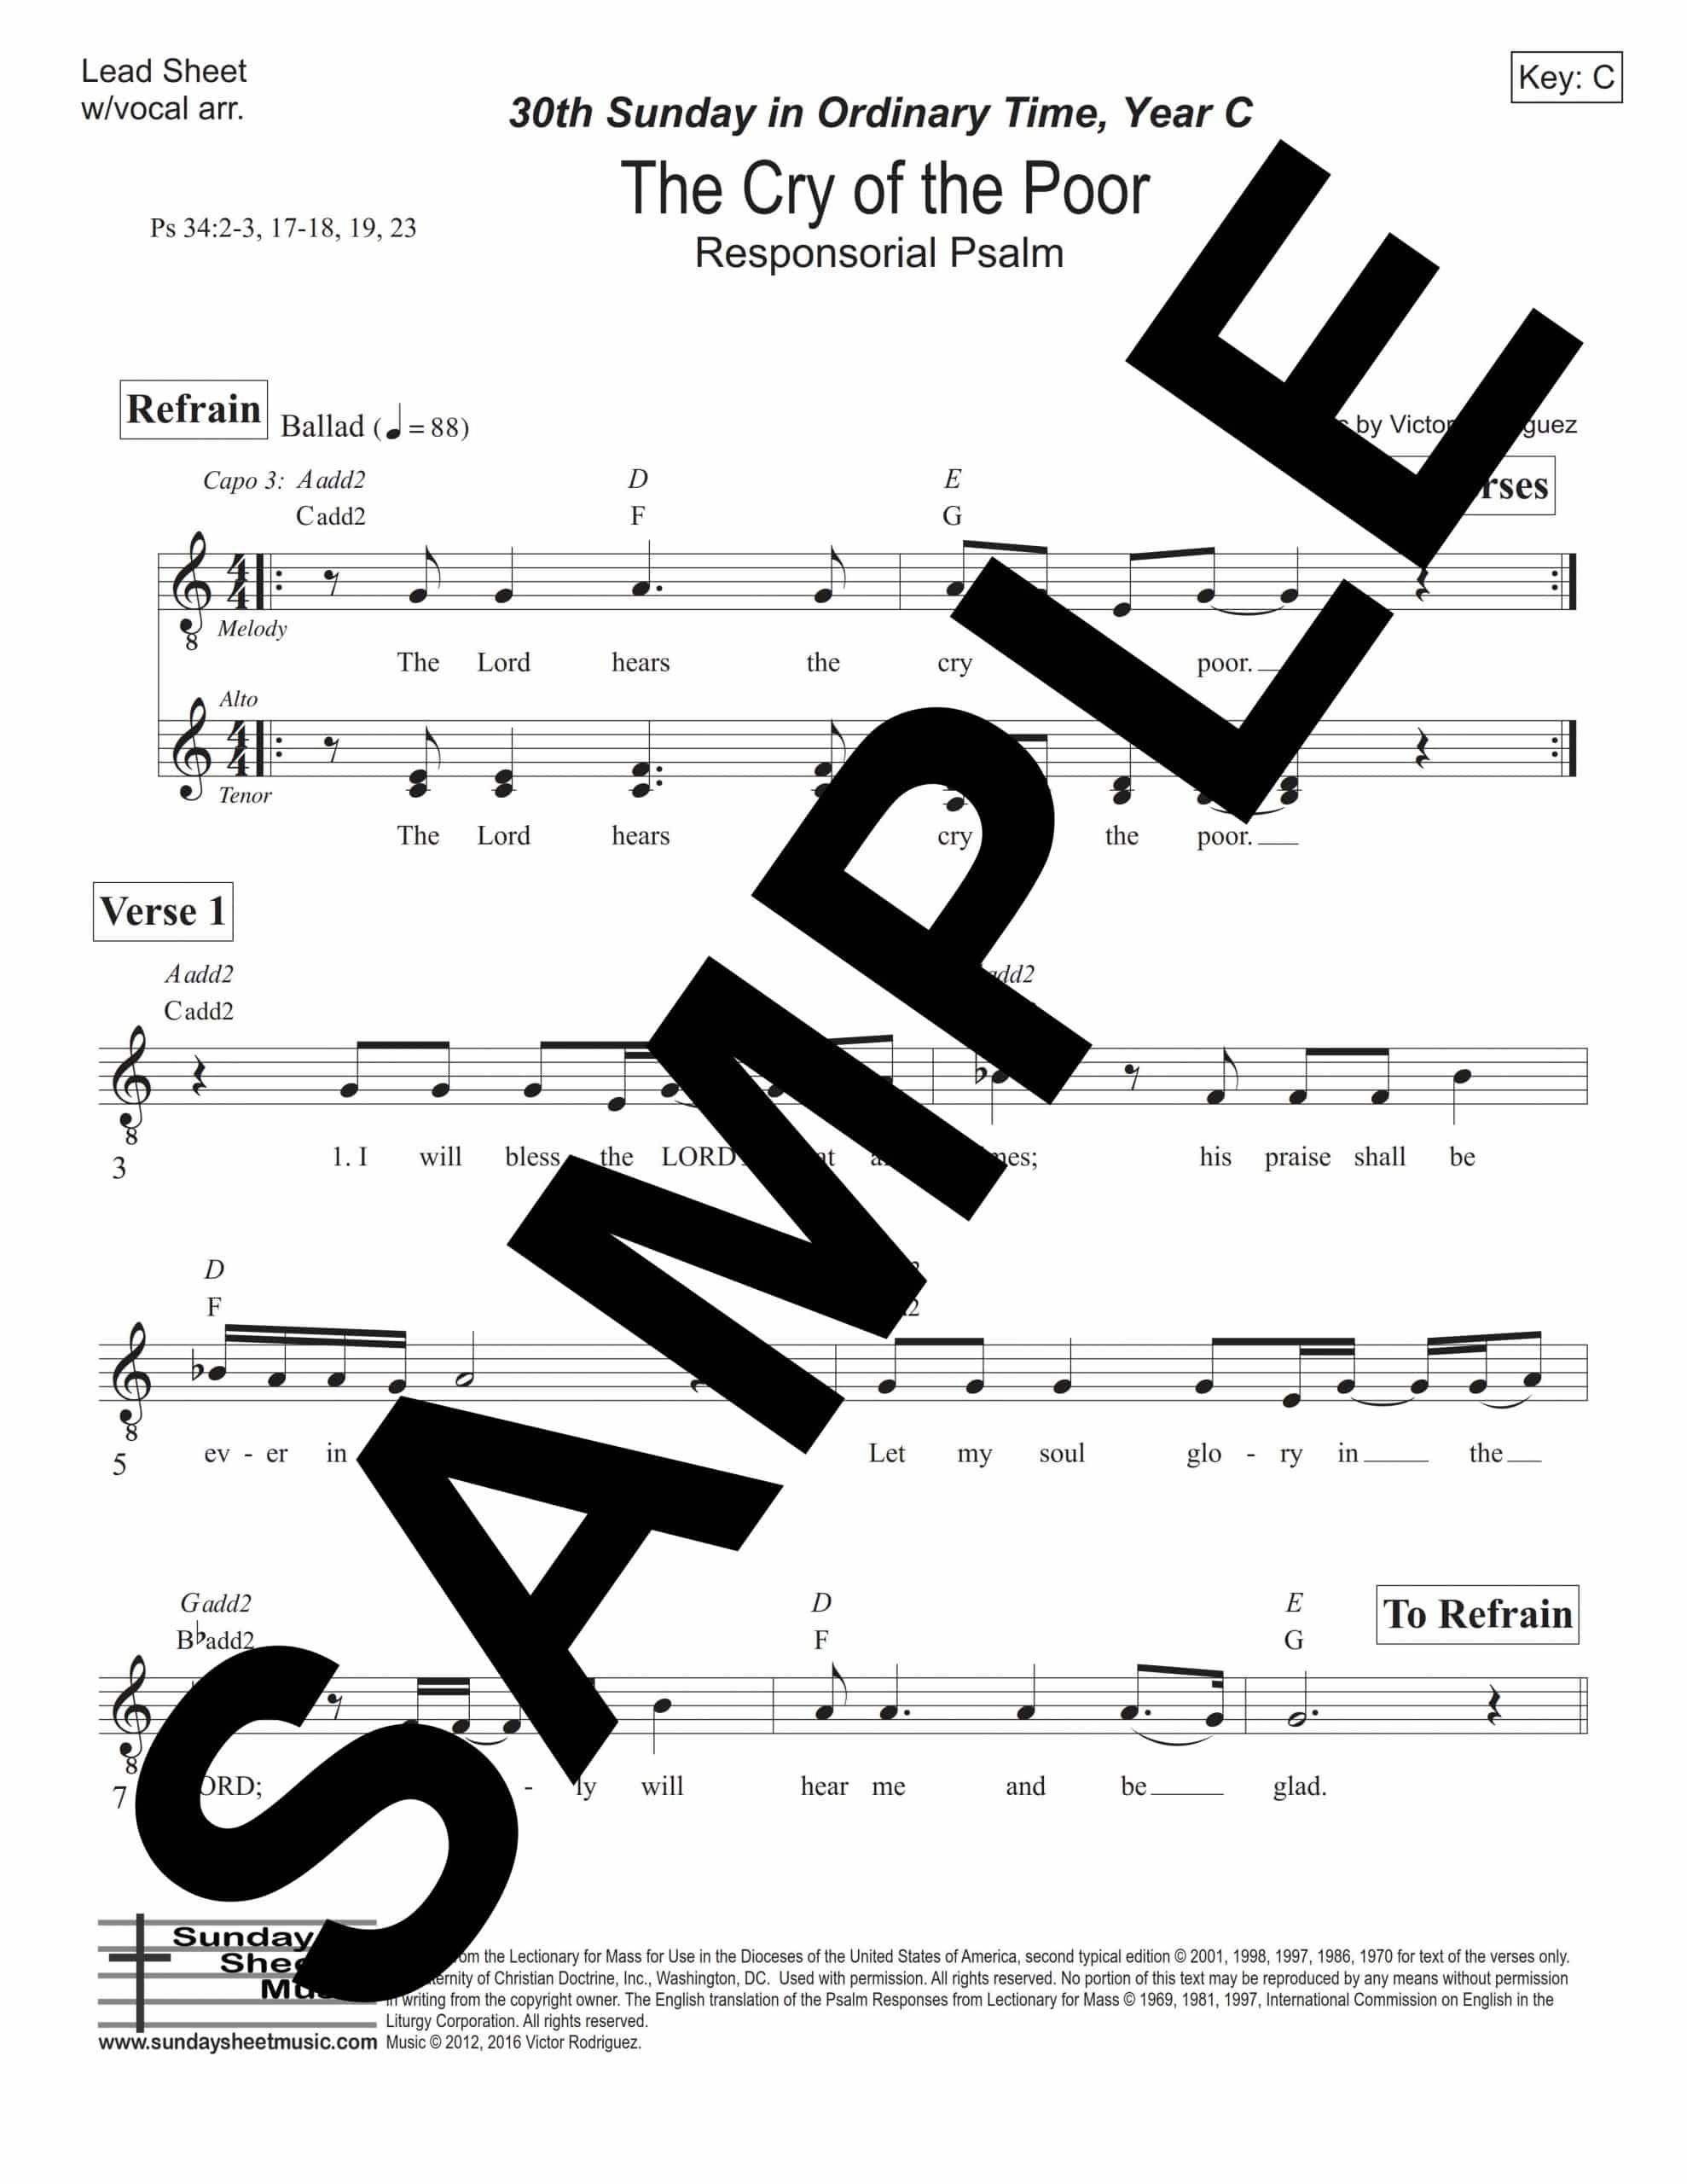 Psalm 34 The Cry of the Poor Rodriguez Sample Lead Sheet w vocal arr scaled